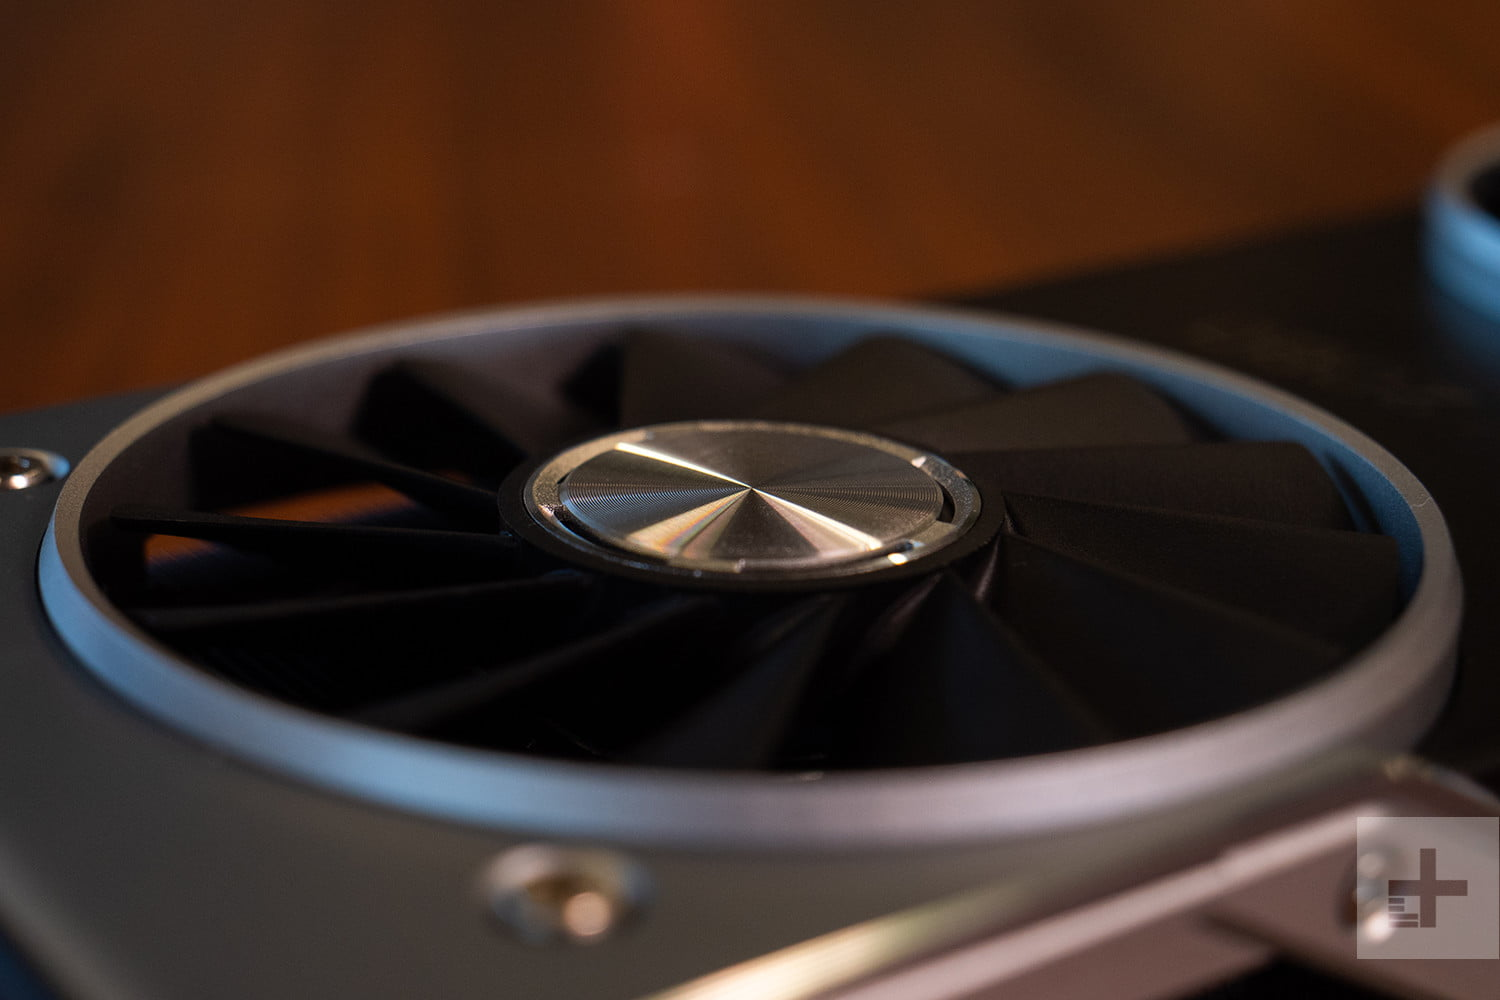 Nvidia RTX 2080 and 2080 Ti: Tested and Benchmarked